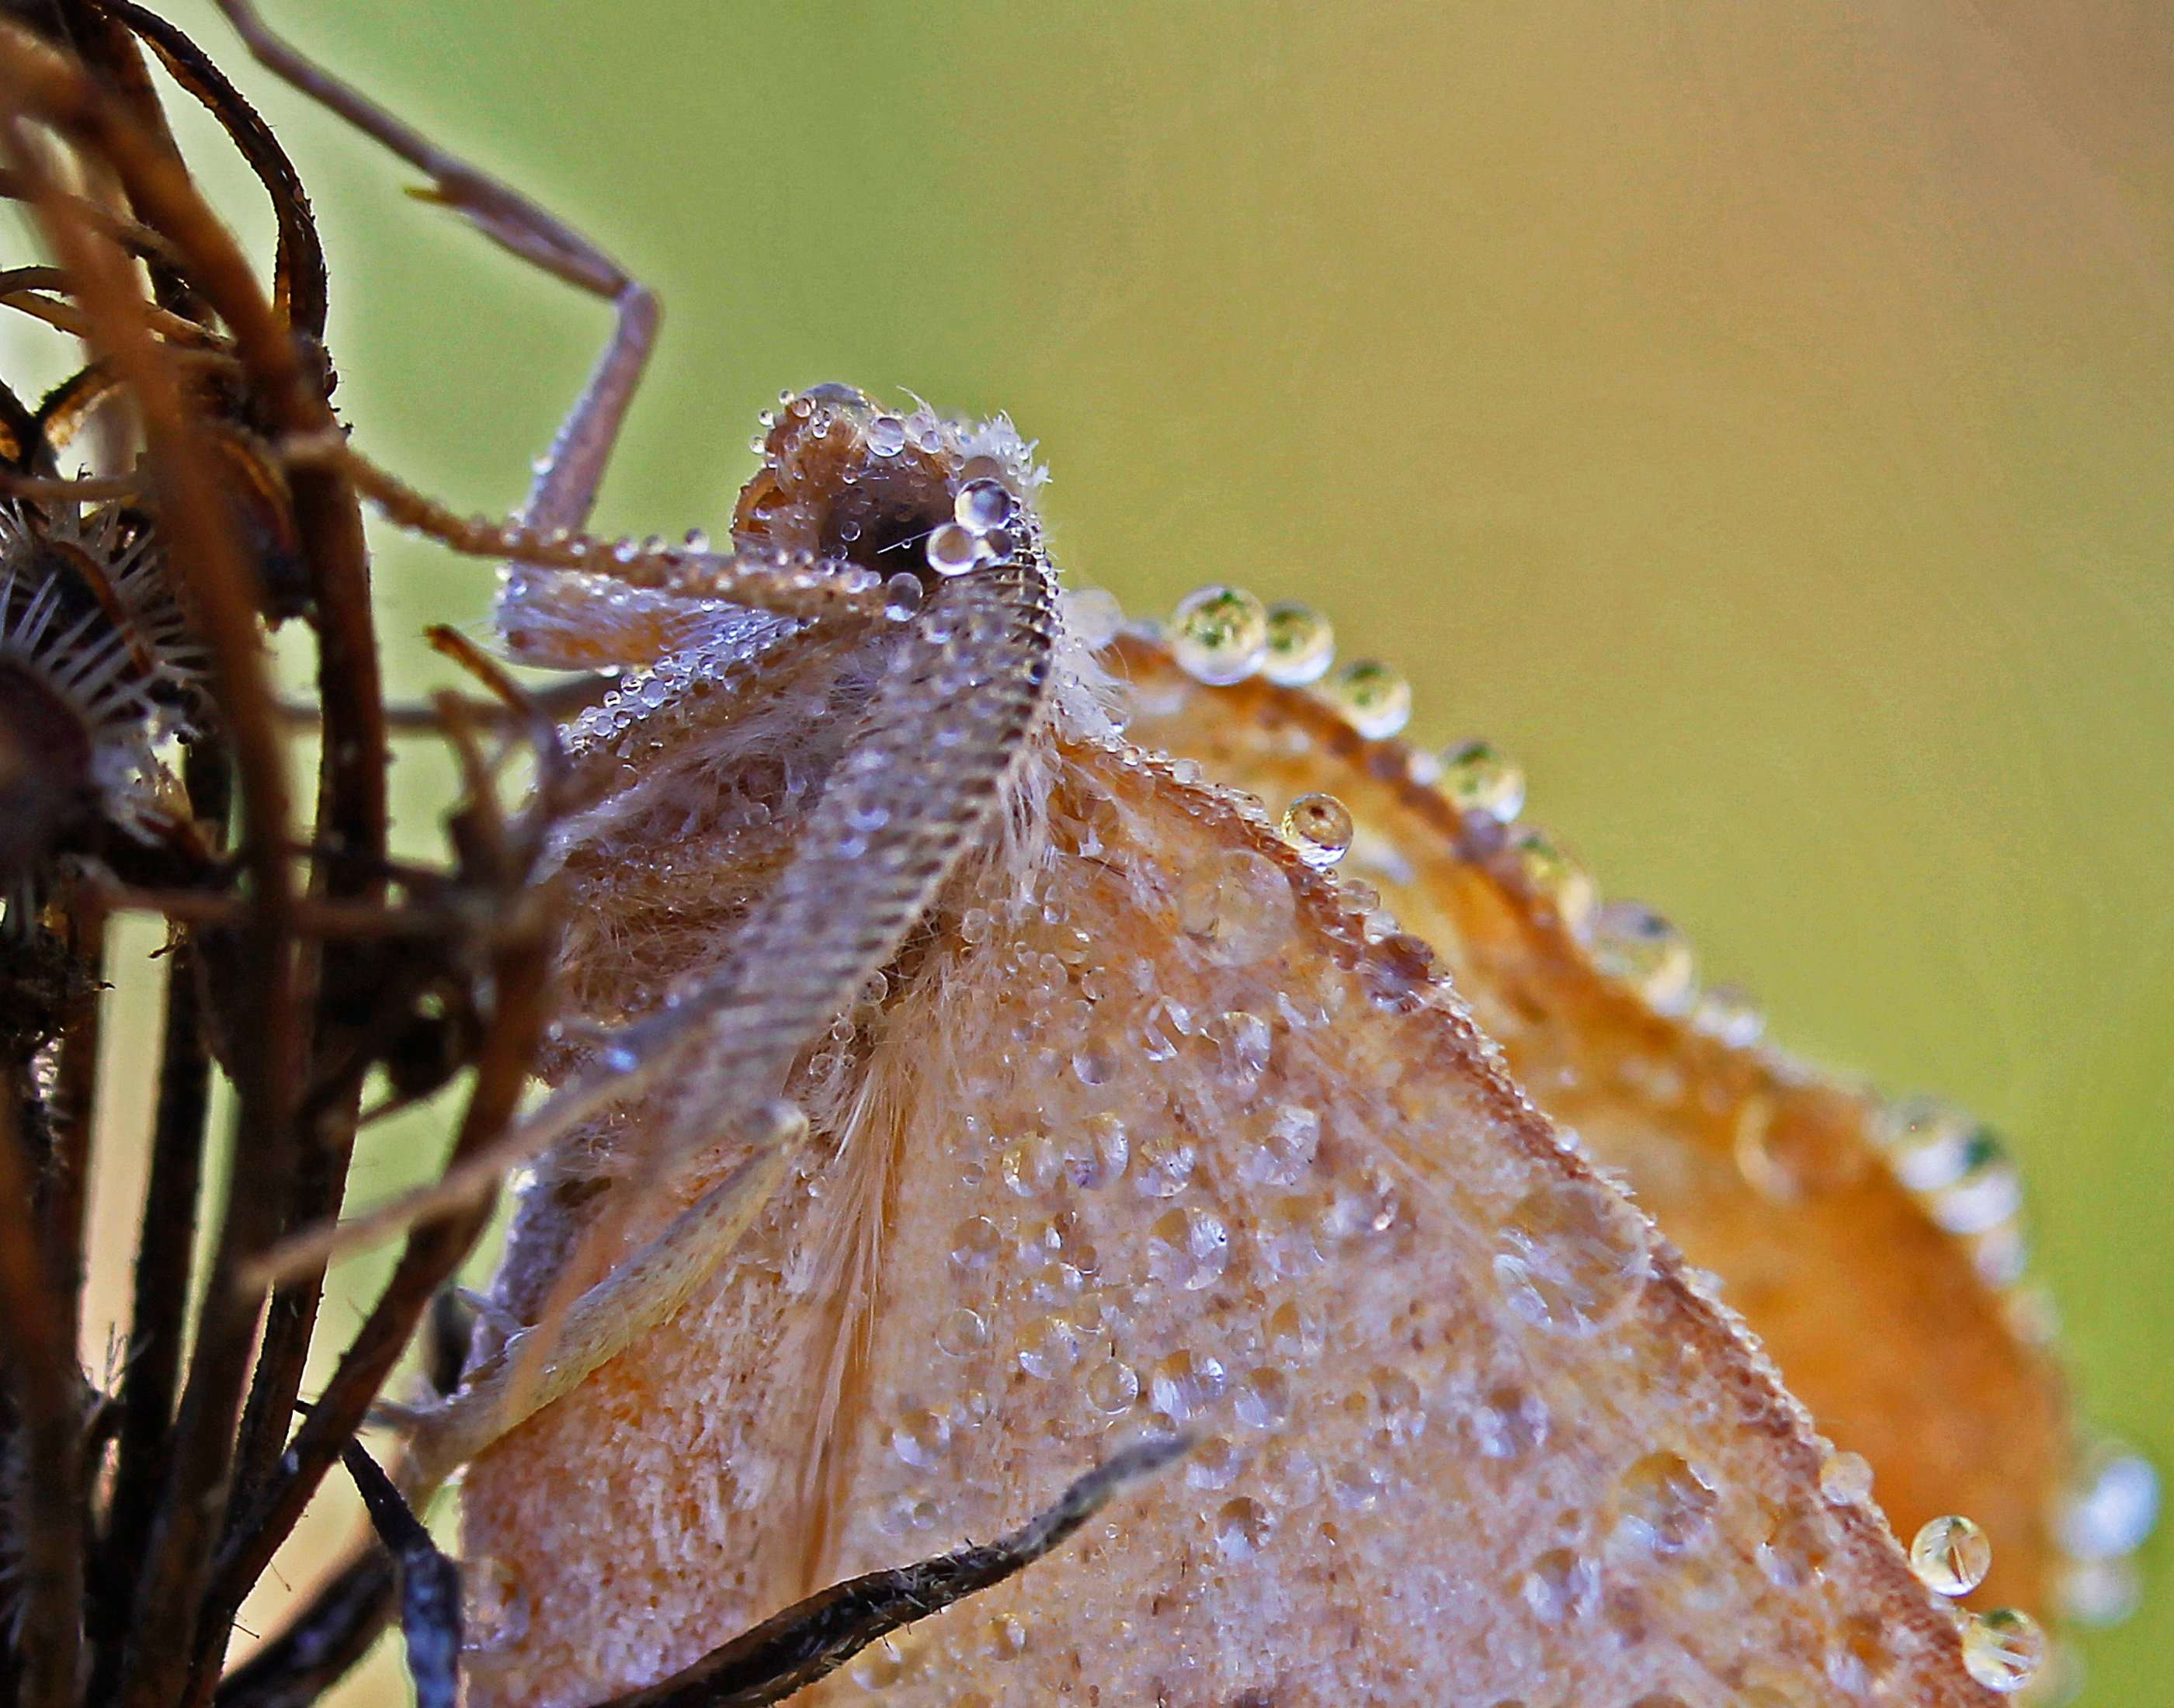 Moth's morning often means wet with lots of dewdrops